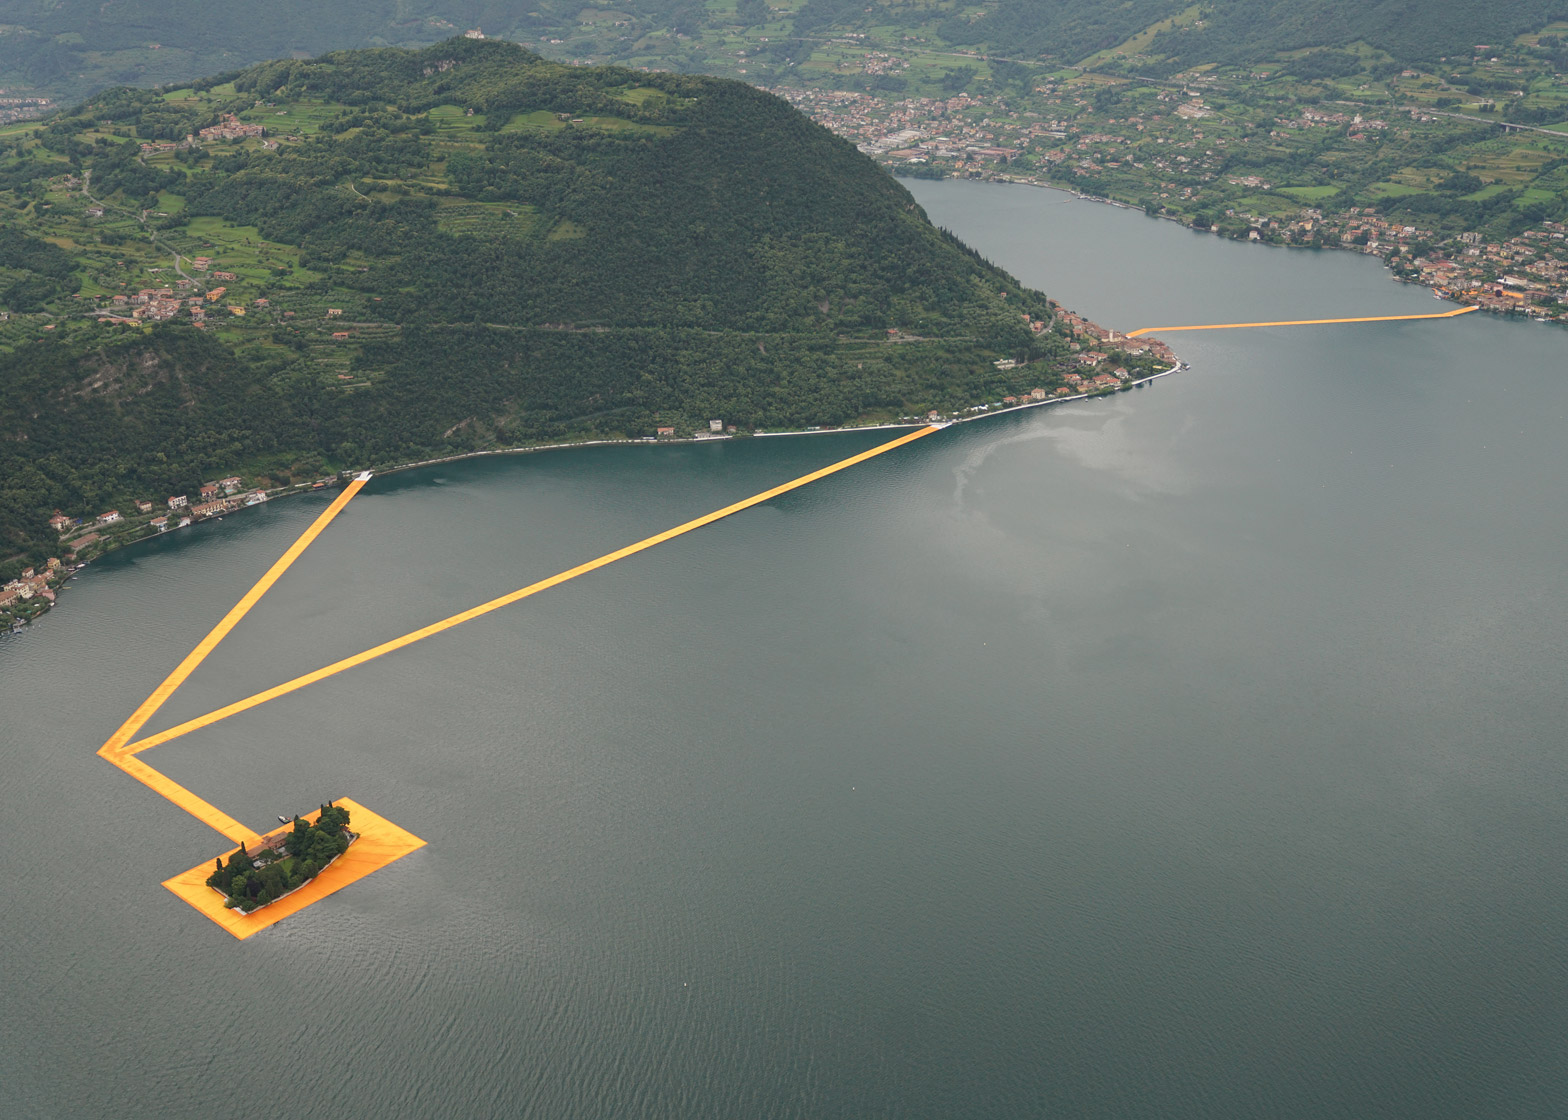 floating-piers-christo-lake-iseo-italy-june-2016-orange-yellow-fabric-birds-eye_dezeen_1568_0